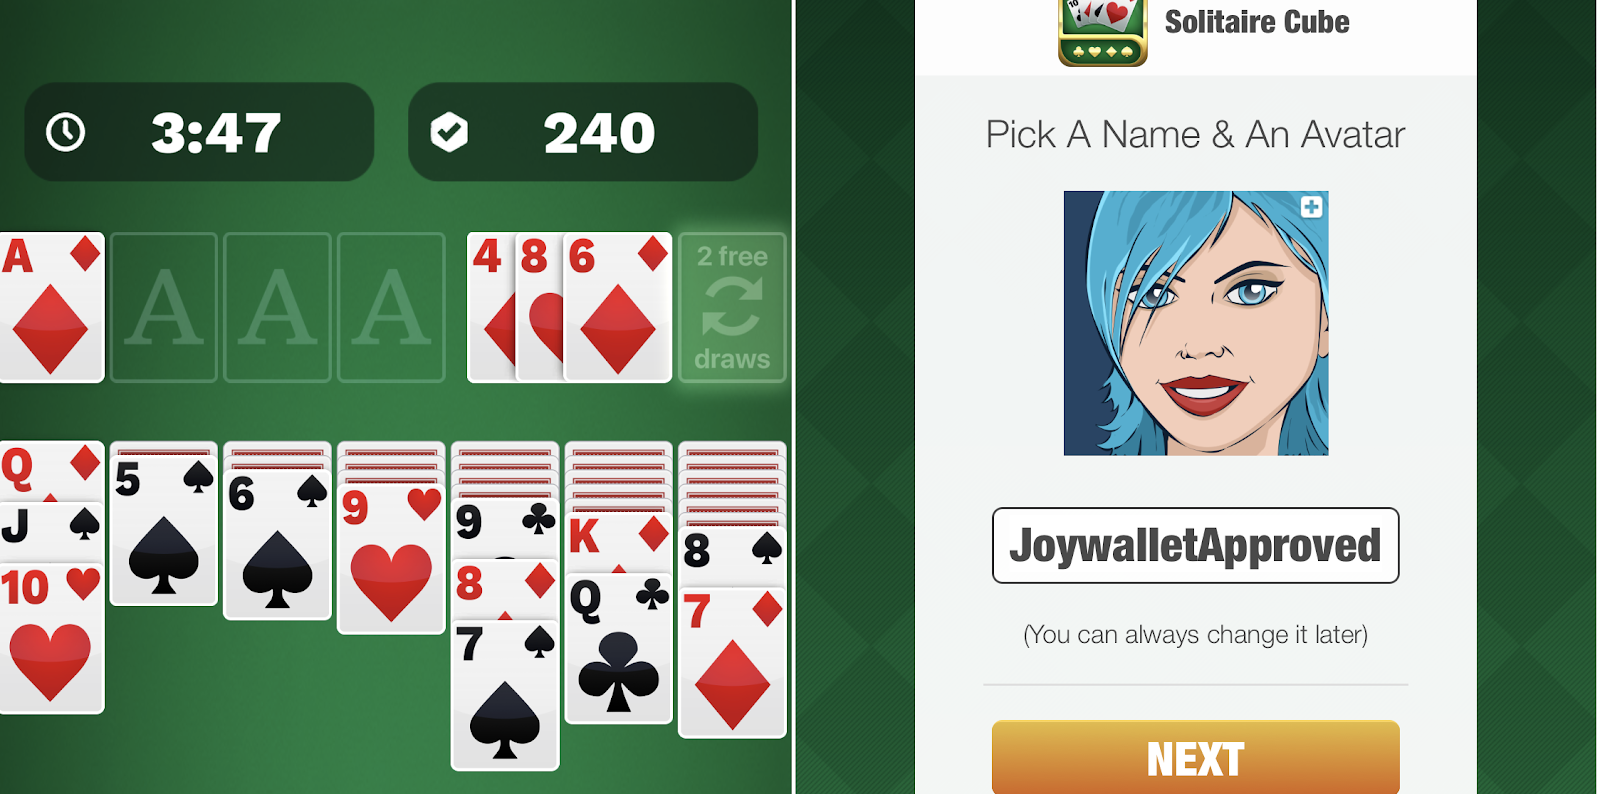 Solitaire Cube App Screen